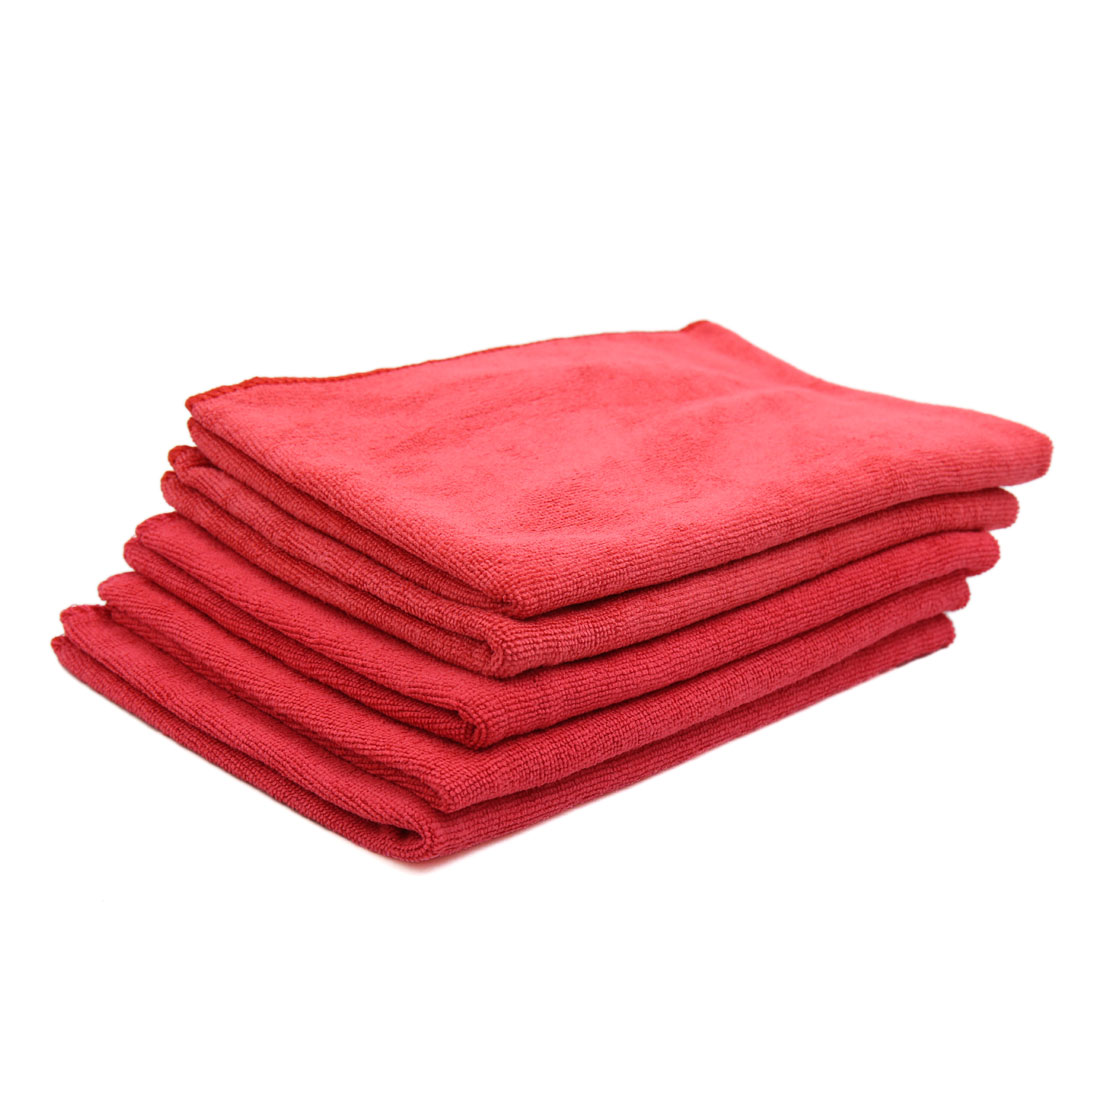 5pcs 65 x 33cm 250GSM Microfiber Towel Clean Cloths for Car Washing Red